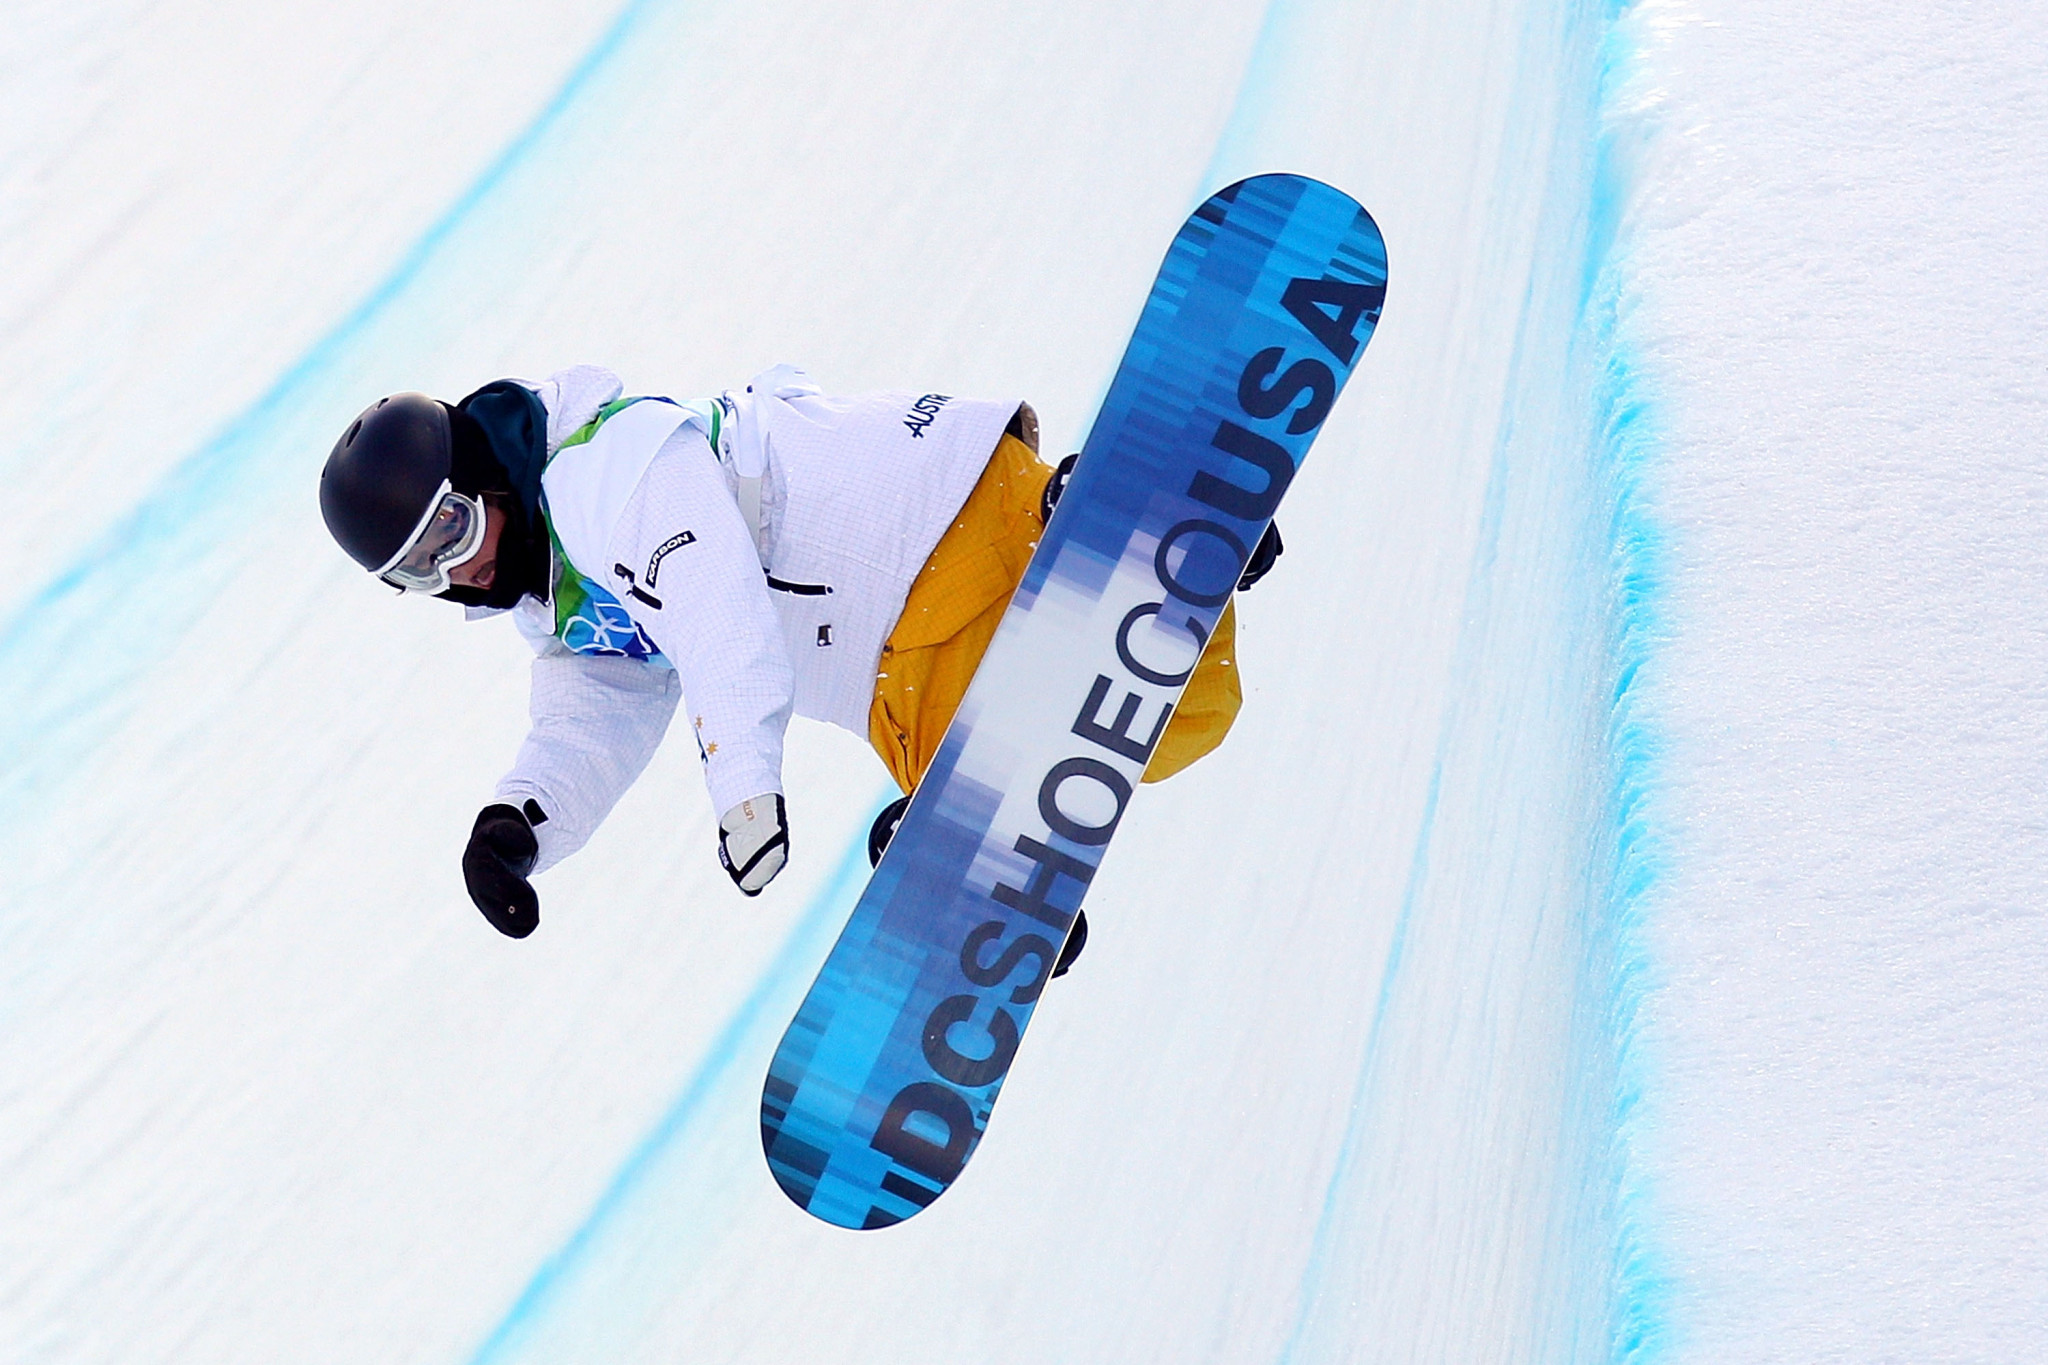 SSA hope the money will help them develop more athletes like Scott James, who won bronze in the men's halfpipe at Pyeongchang 2018 ©Getty Images